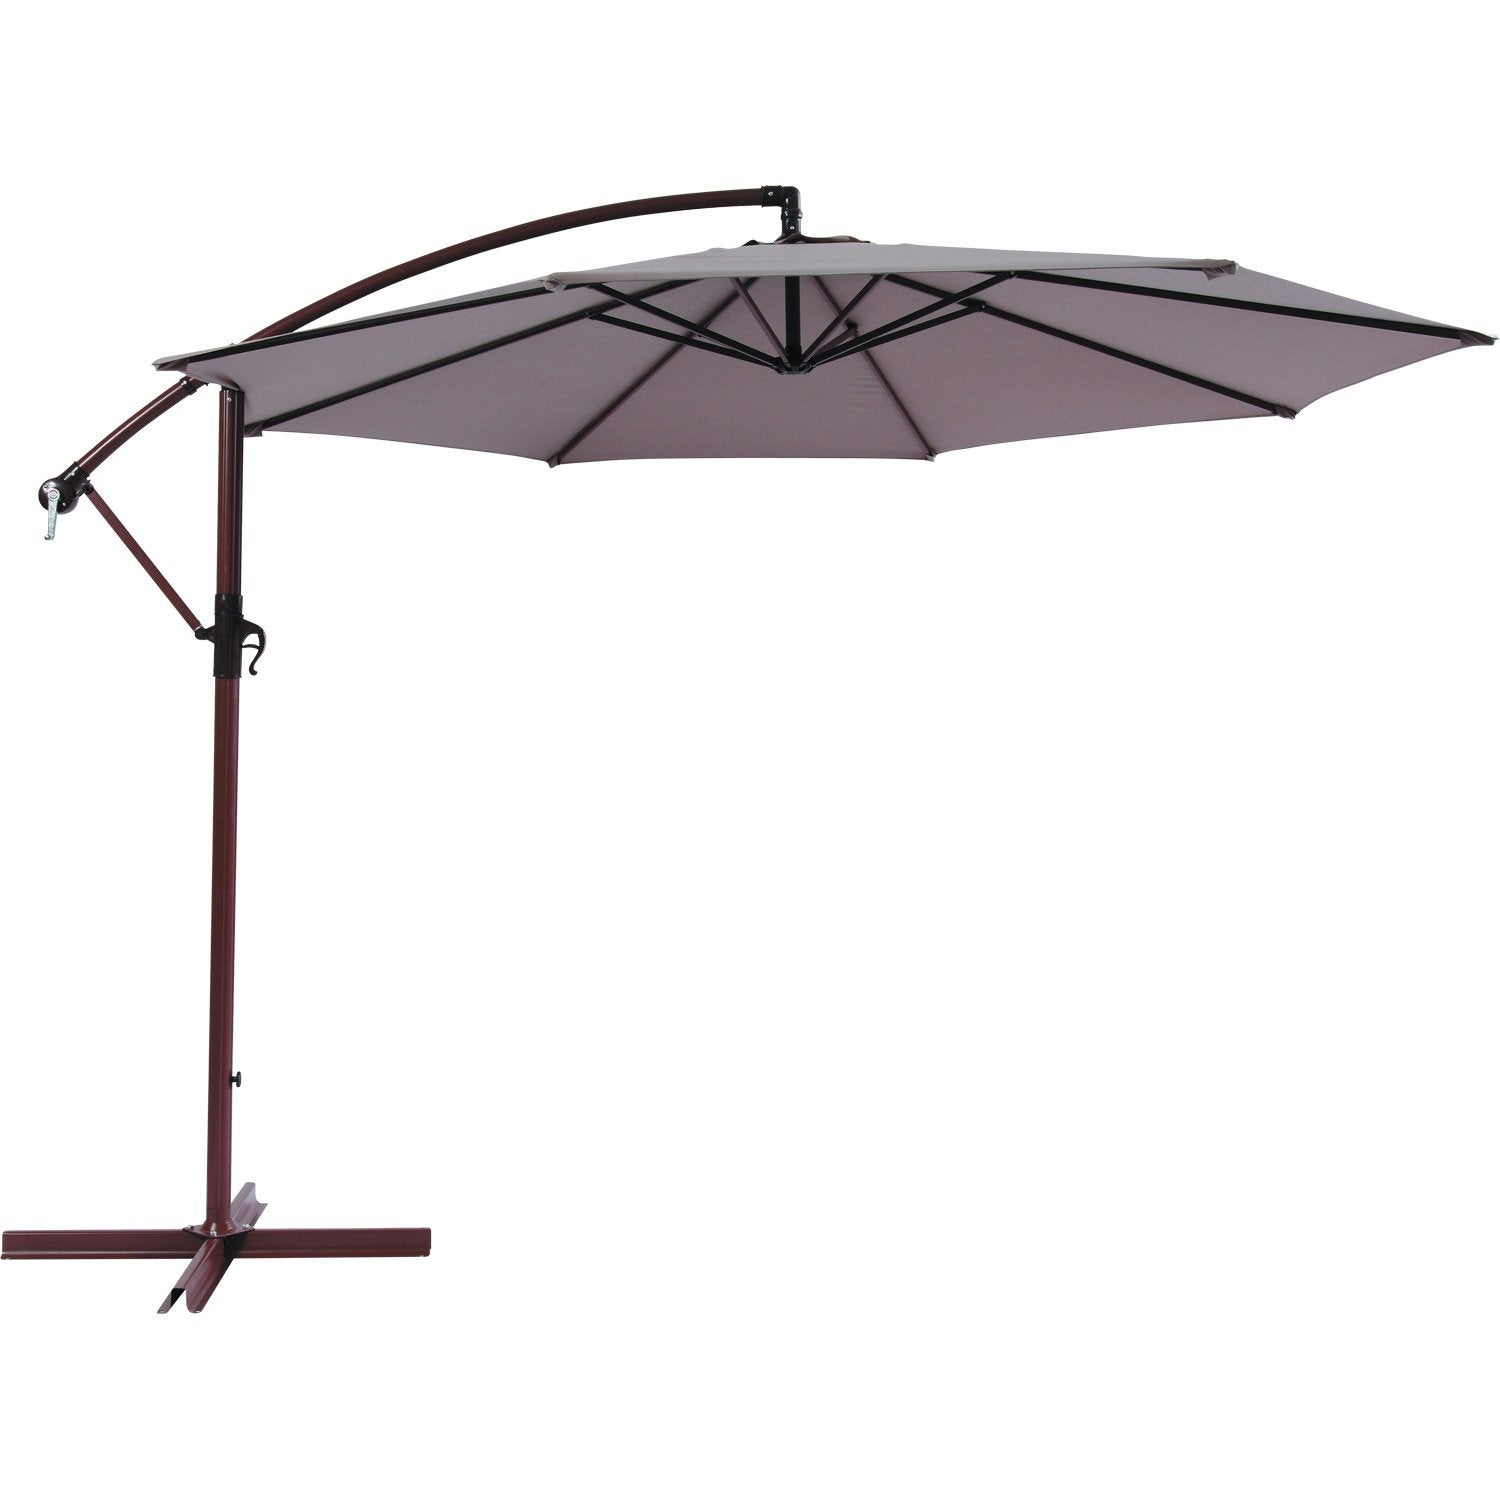 Parasol double pente - Parasol deporte inclinable leroy merlin ...